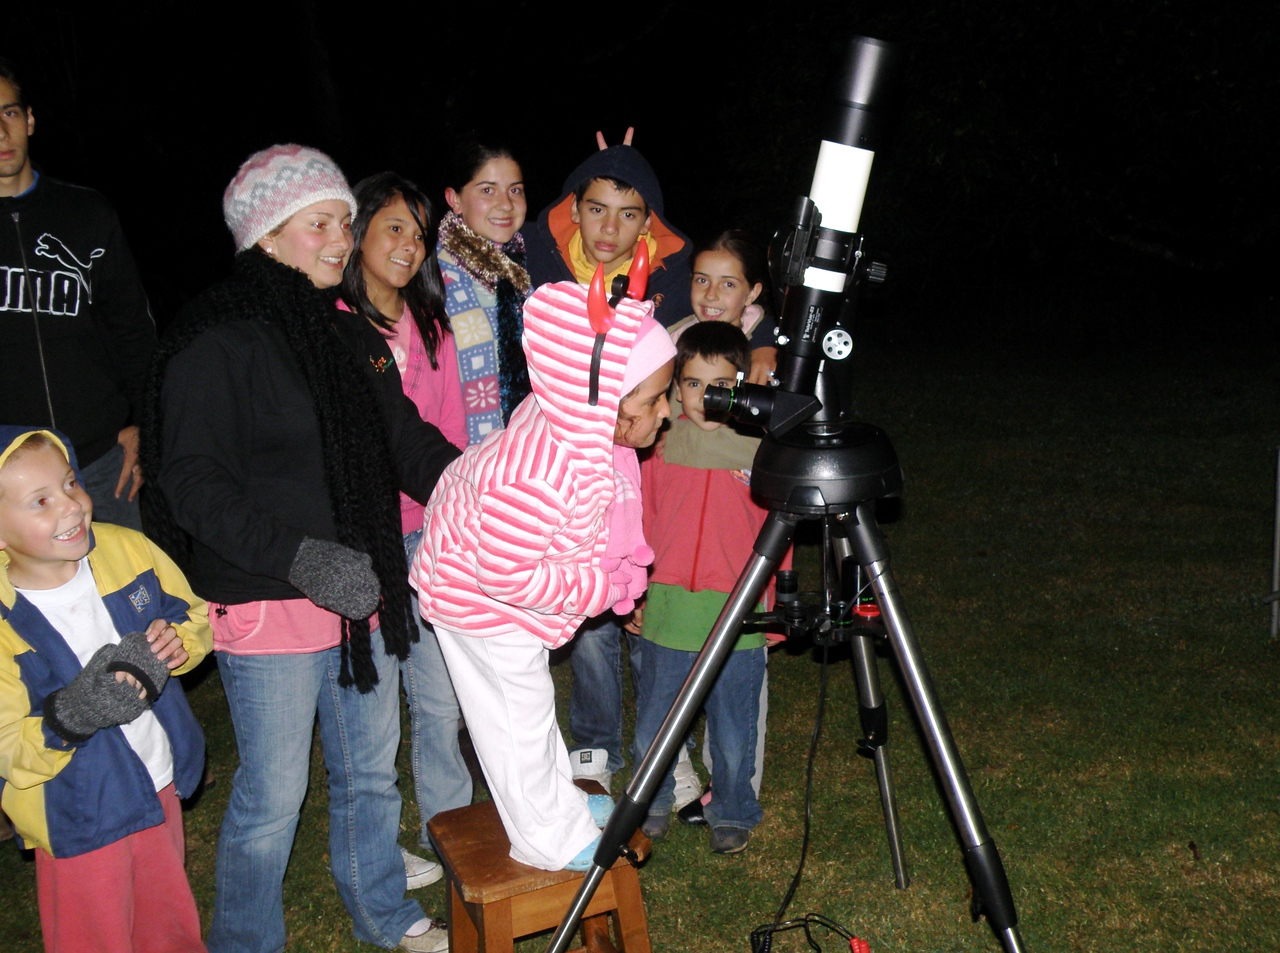 The Savegre valley community was invited to a star party.